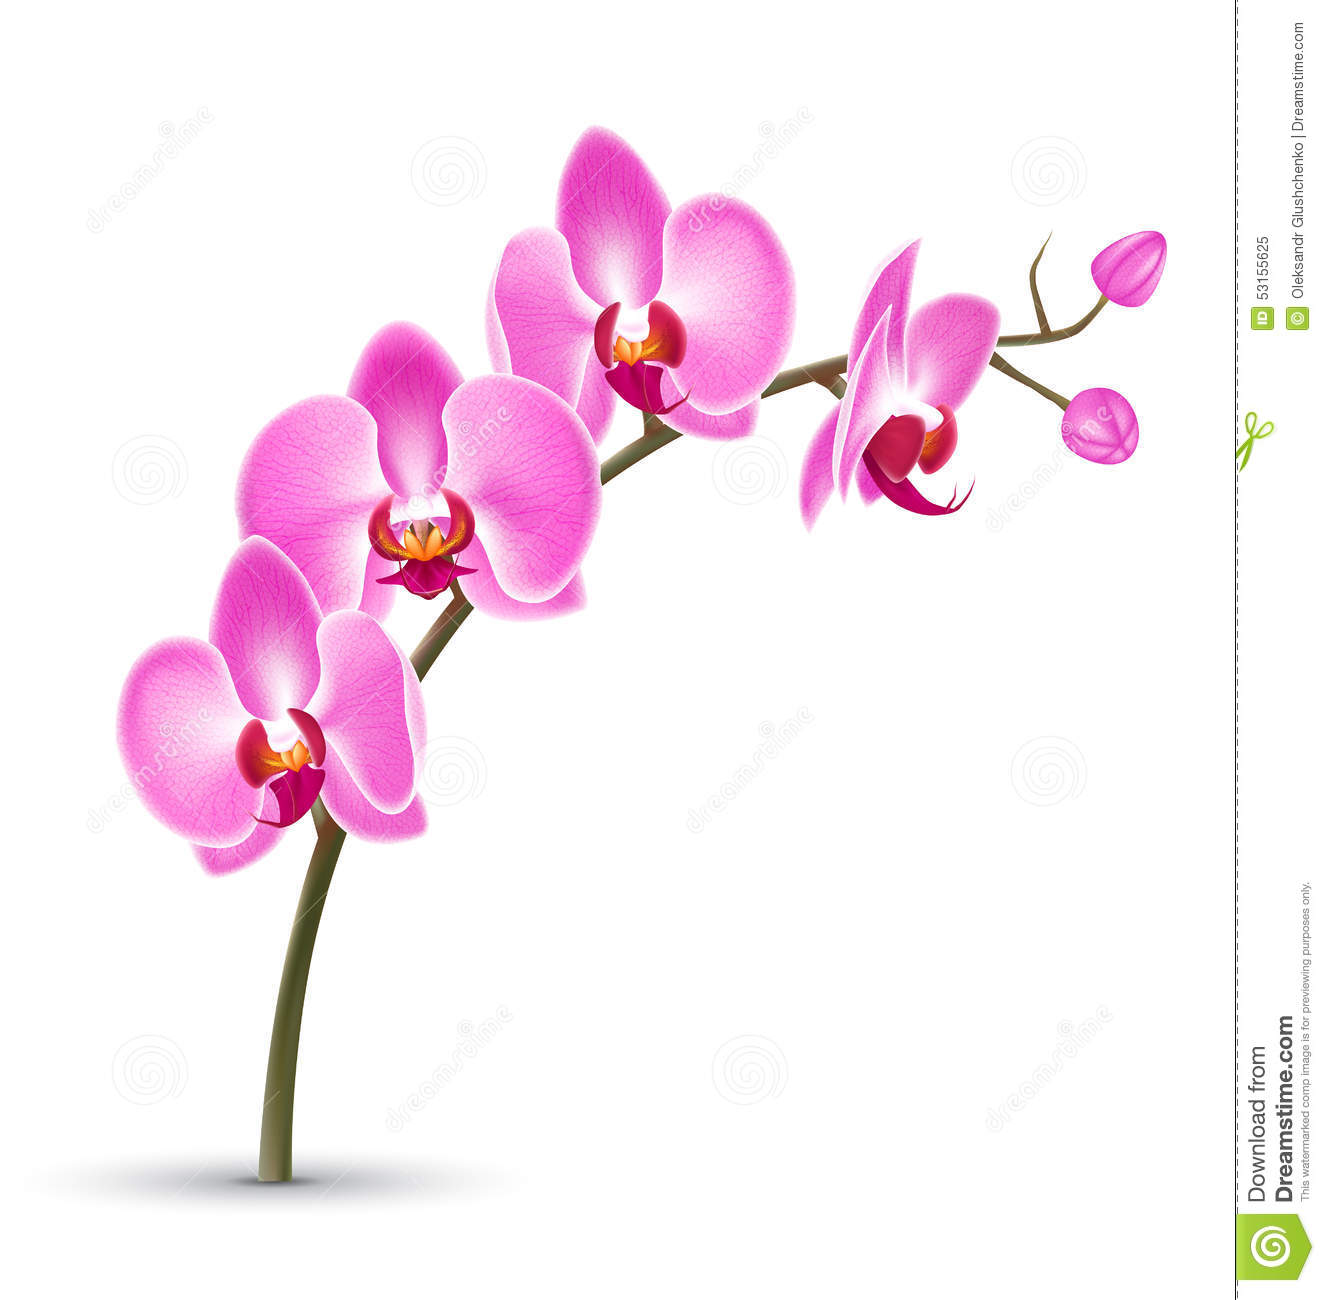 branch of pink orchid isolated on white stock vector illustration of bloom elegant 53155625. Black Bedroom Furniture Sets. Home Design Ideas